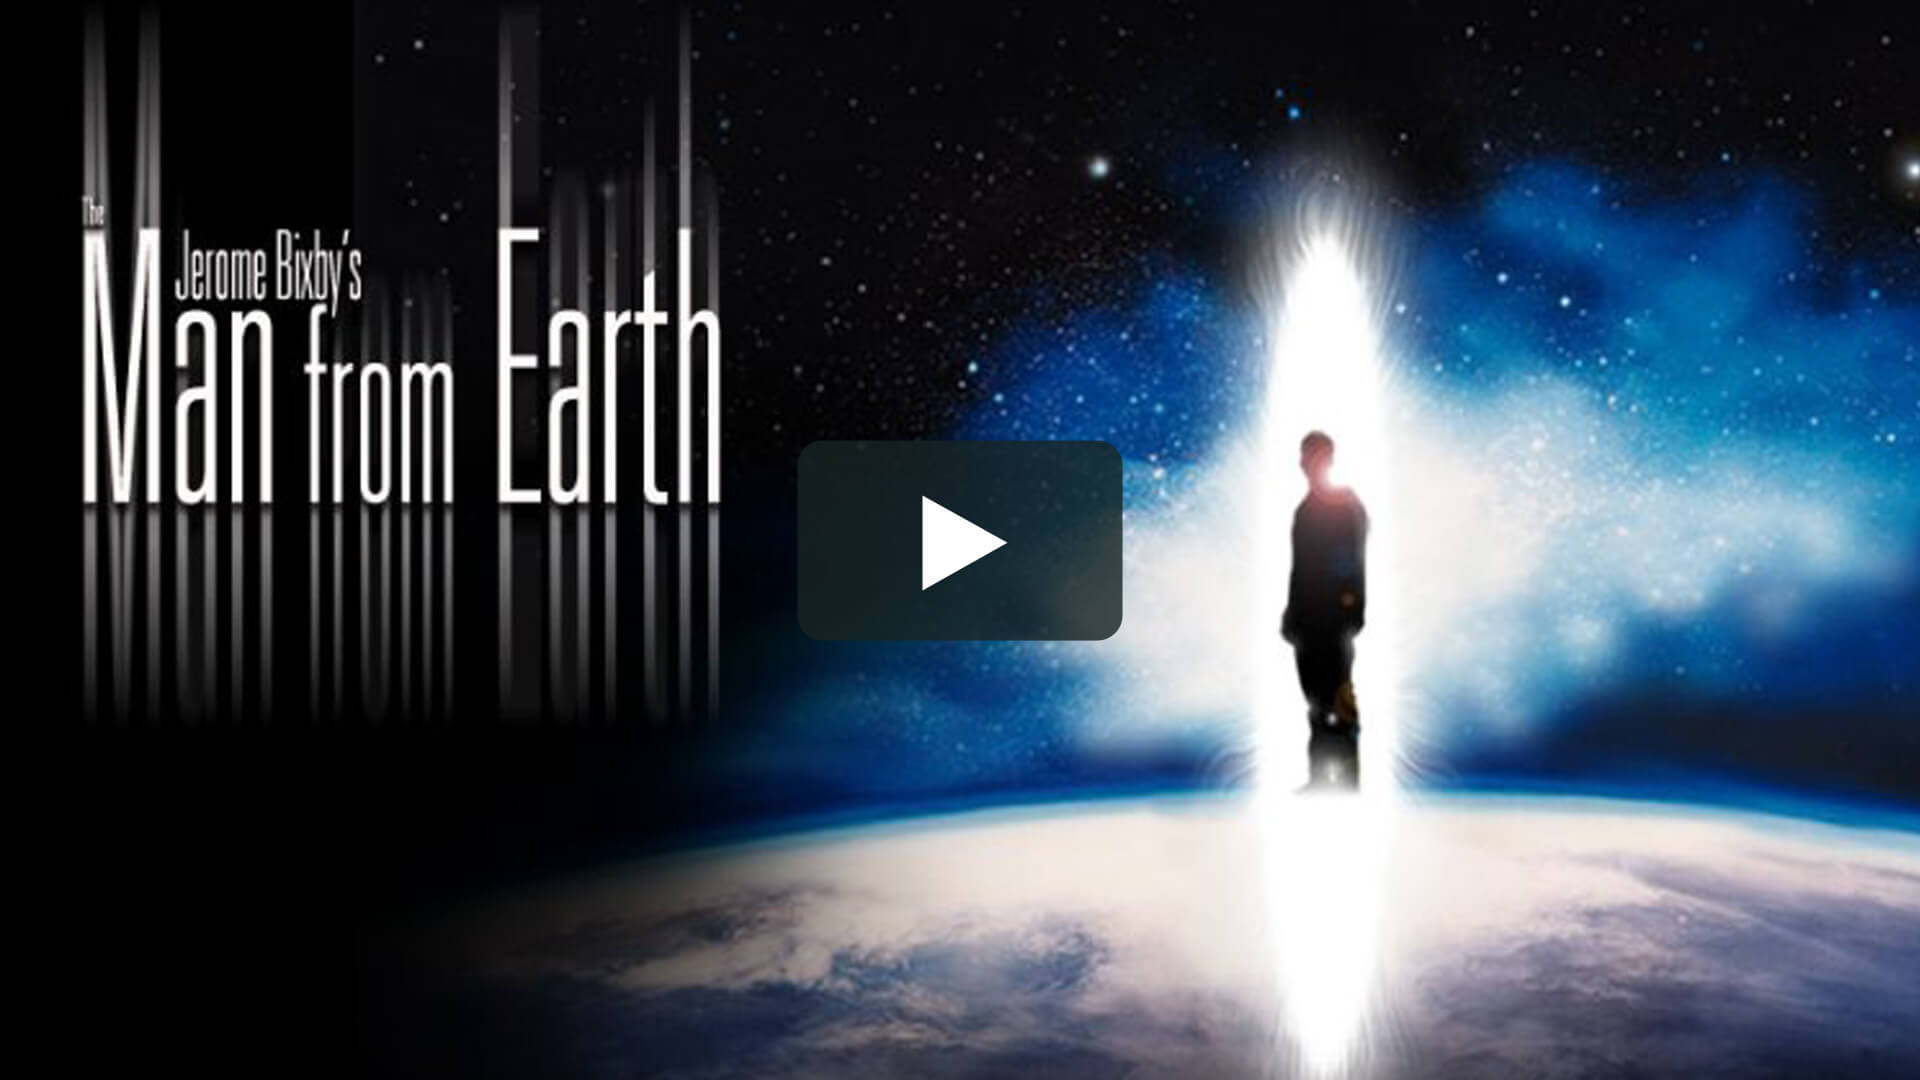 The Man from Earth - 這個男人來自地球